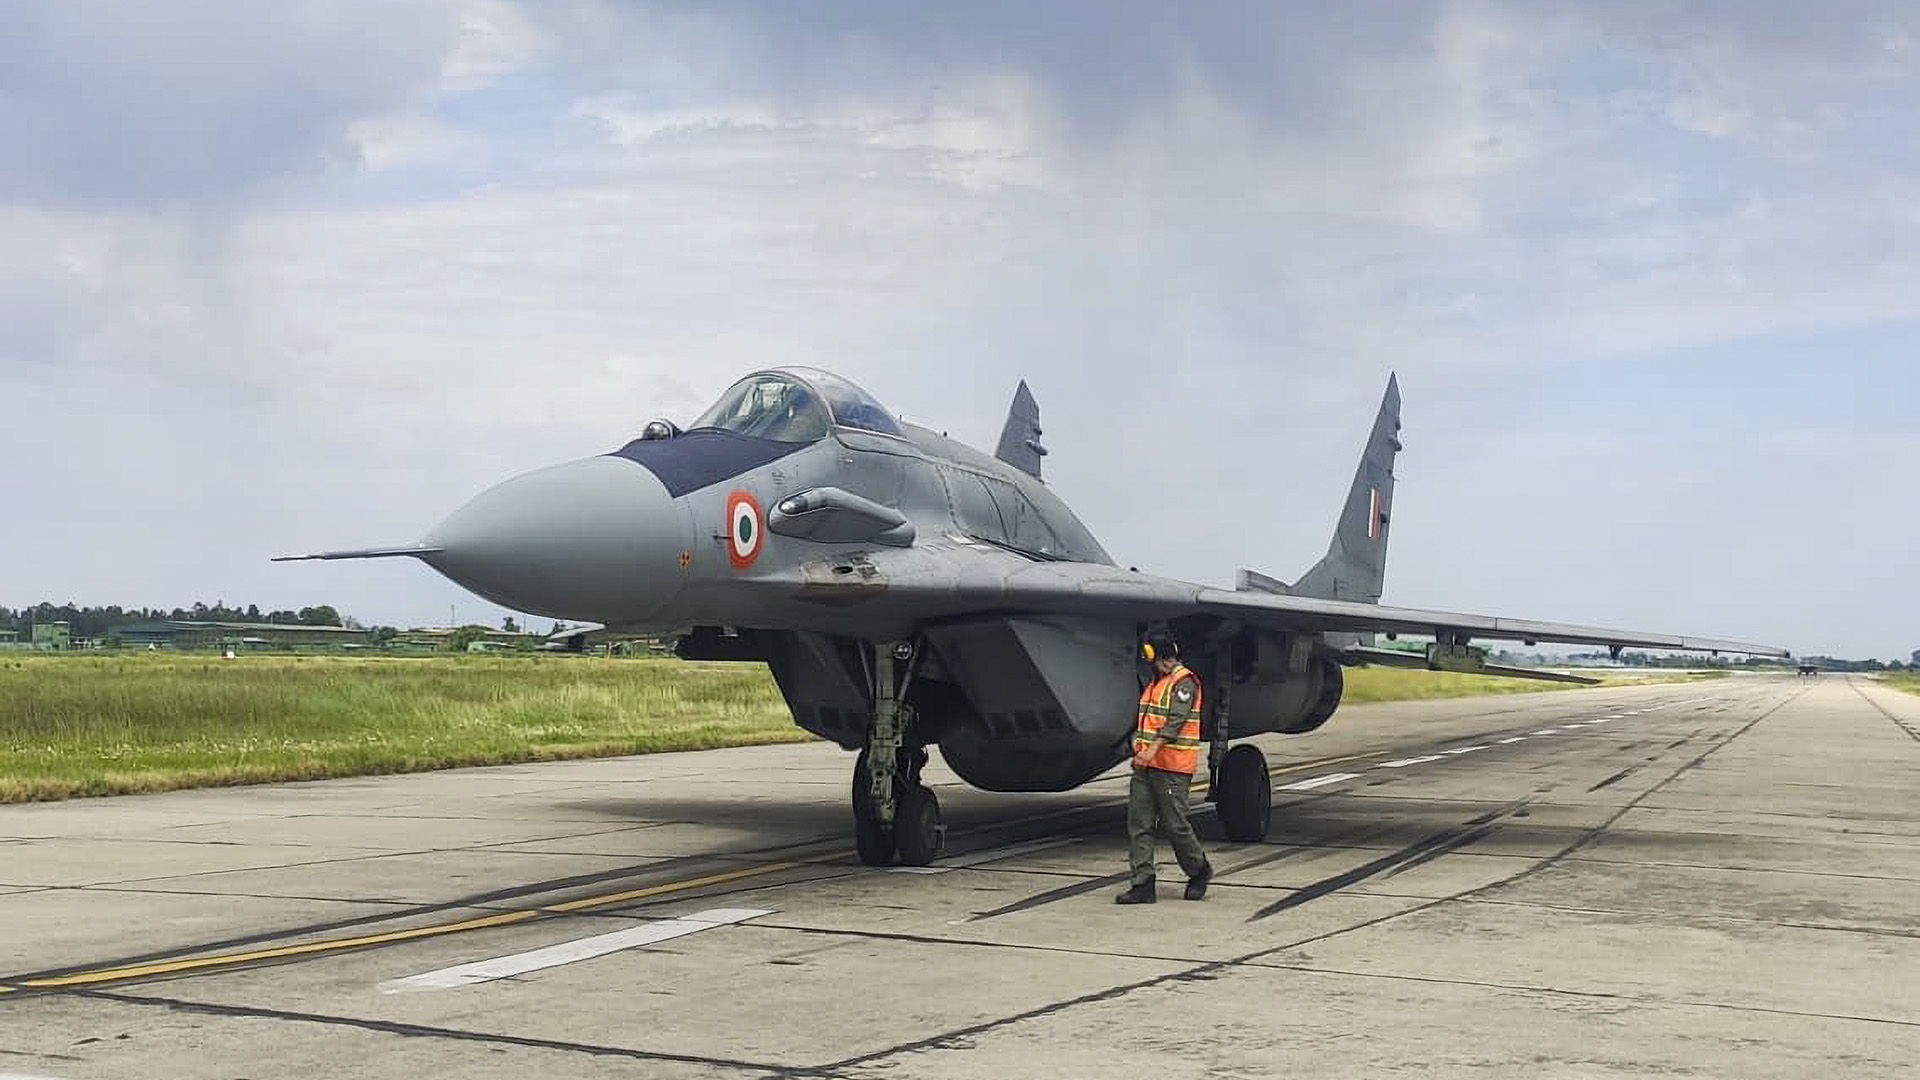 Russia Hands Over Commercial Offer Of 21 MiG-29 Fighters To India